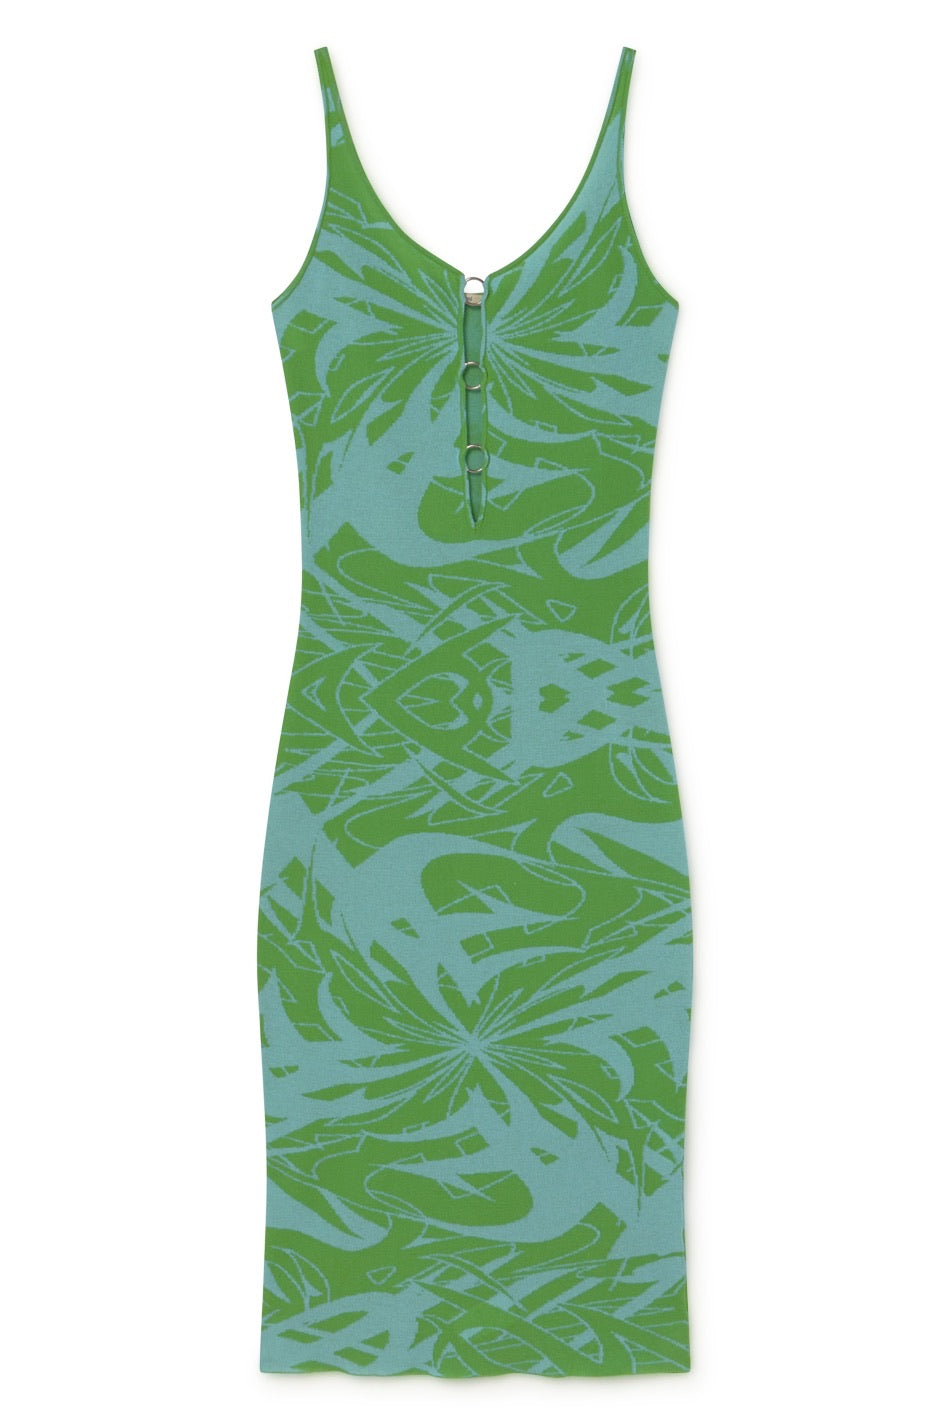 Scorpia Flash Print Knit Dress - Light Blue & Green